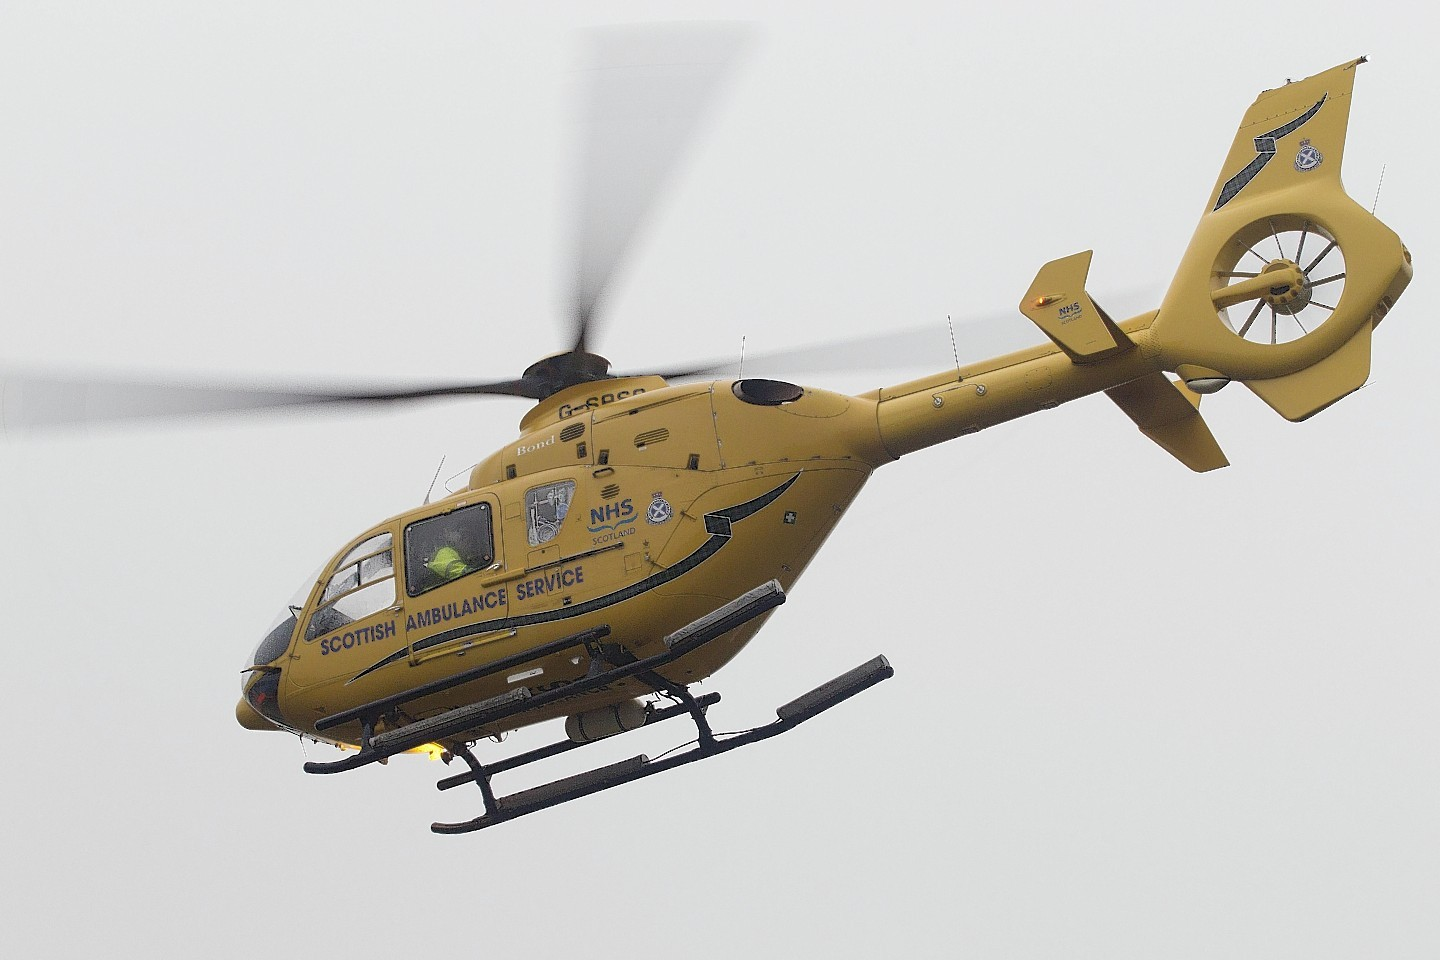 An air ambulance helicopter